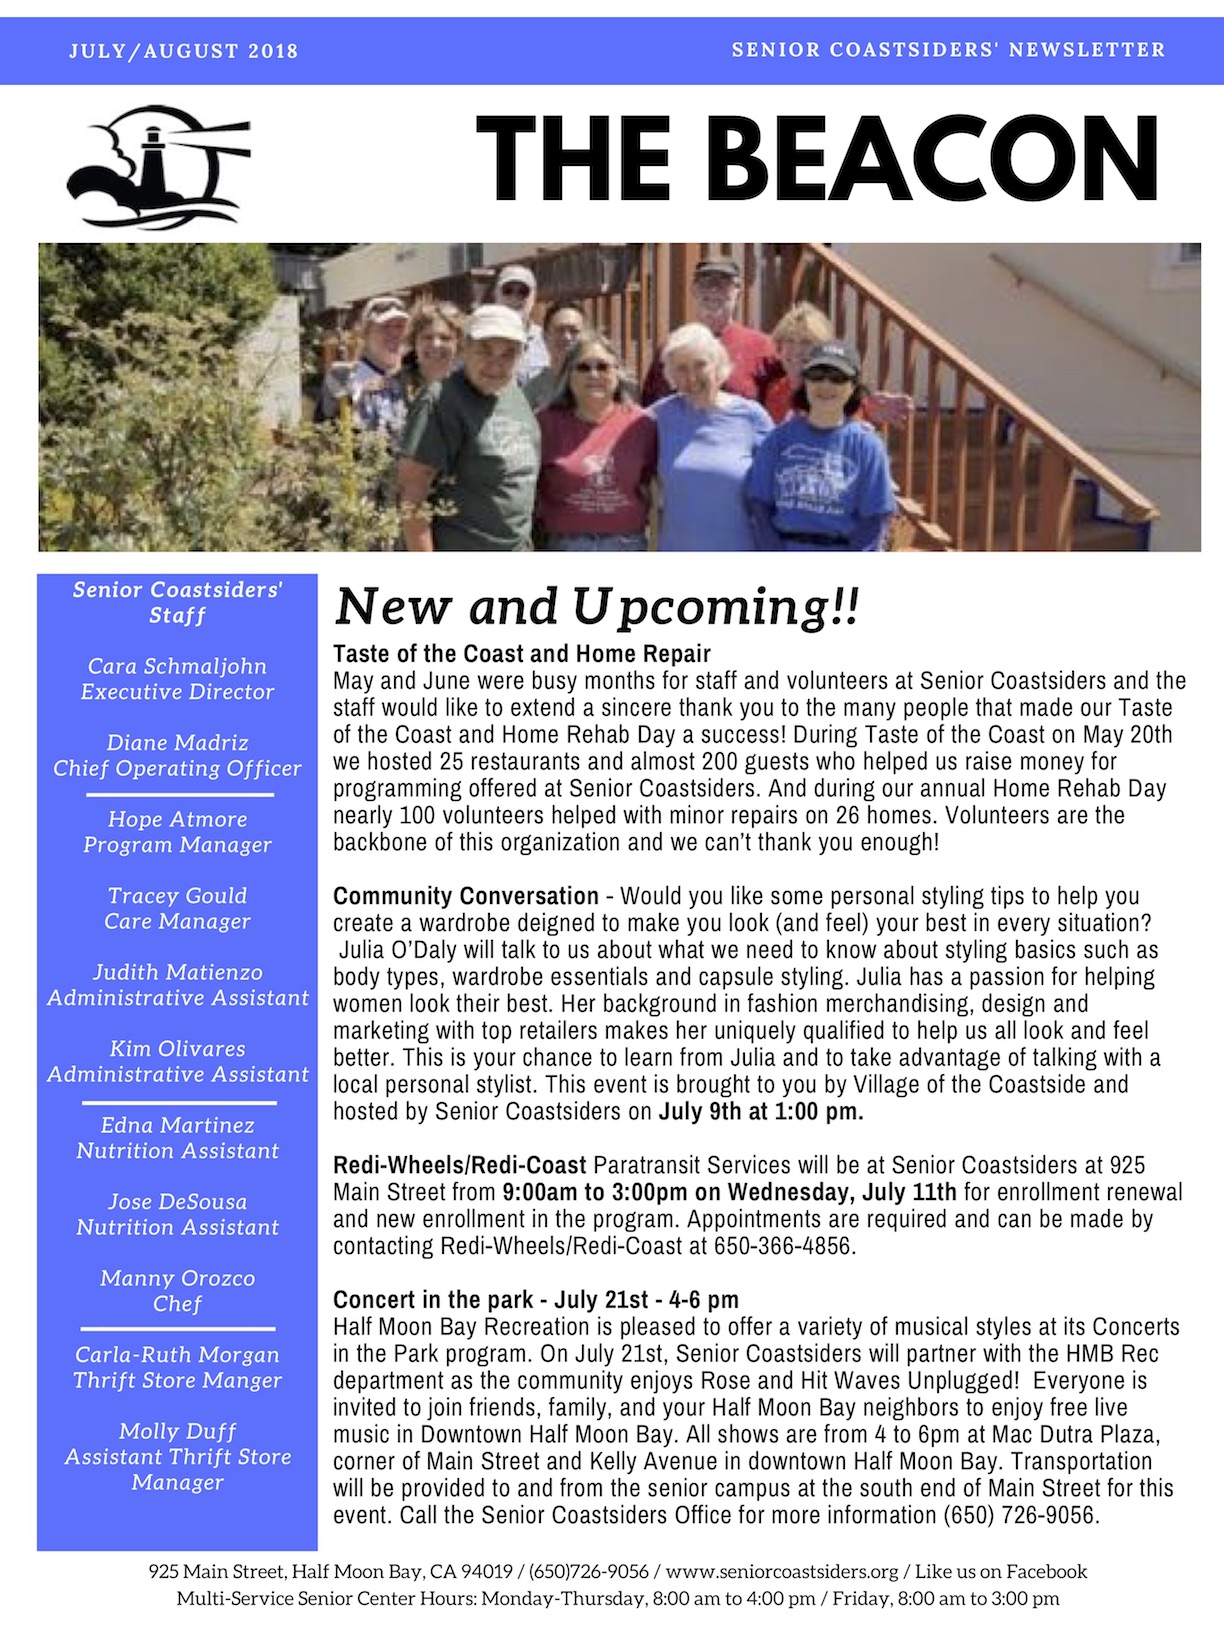 Beacon Newsletter p 1 July_August.jpg